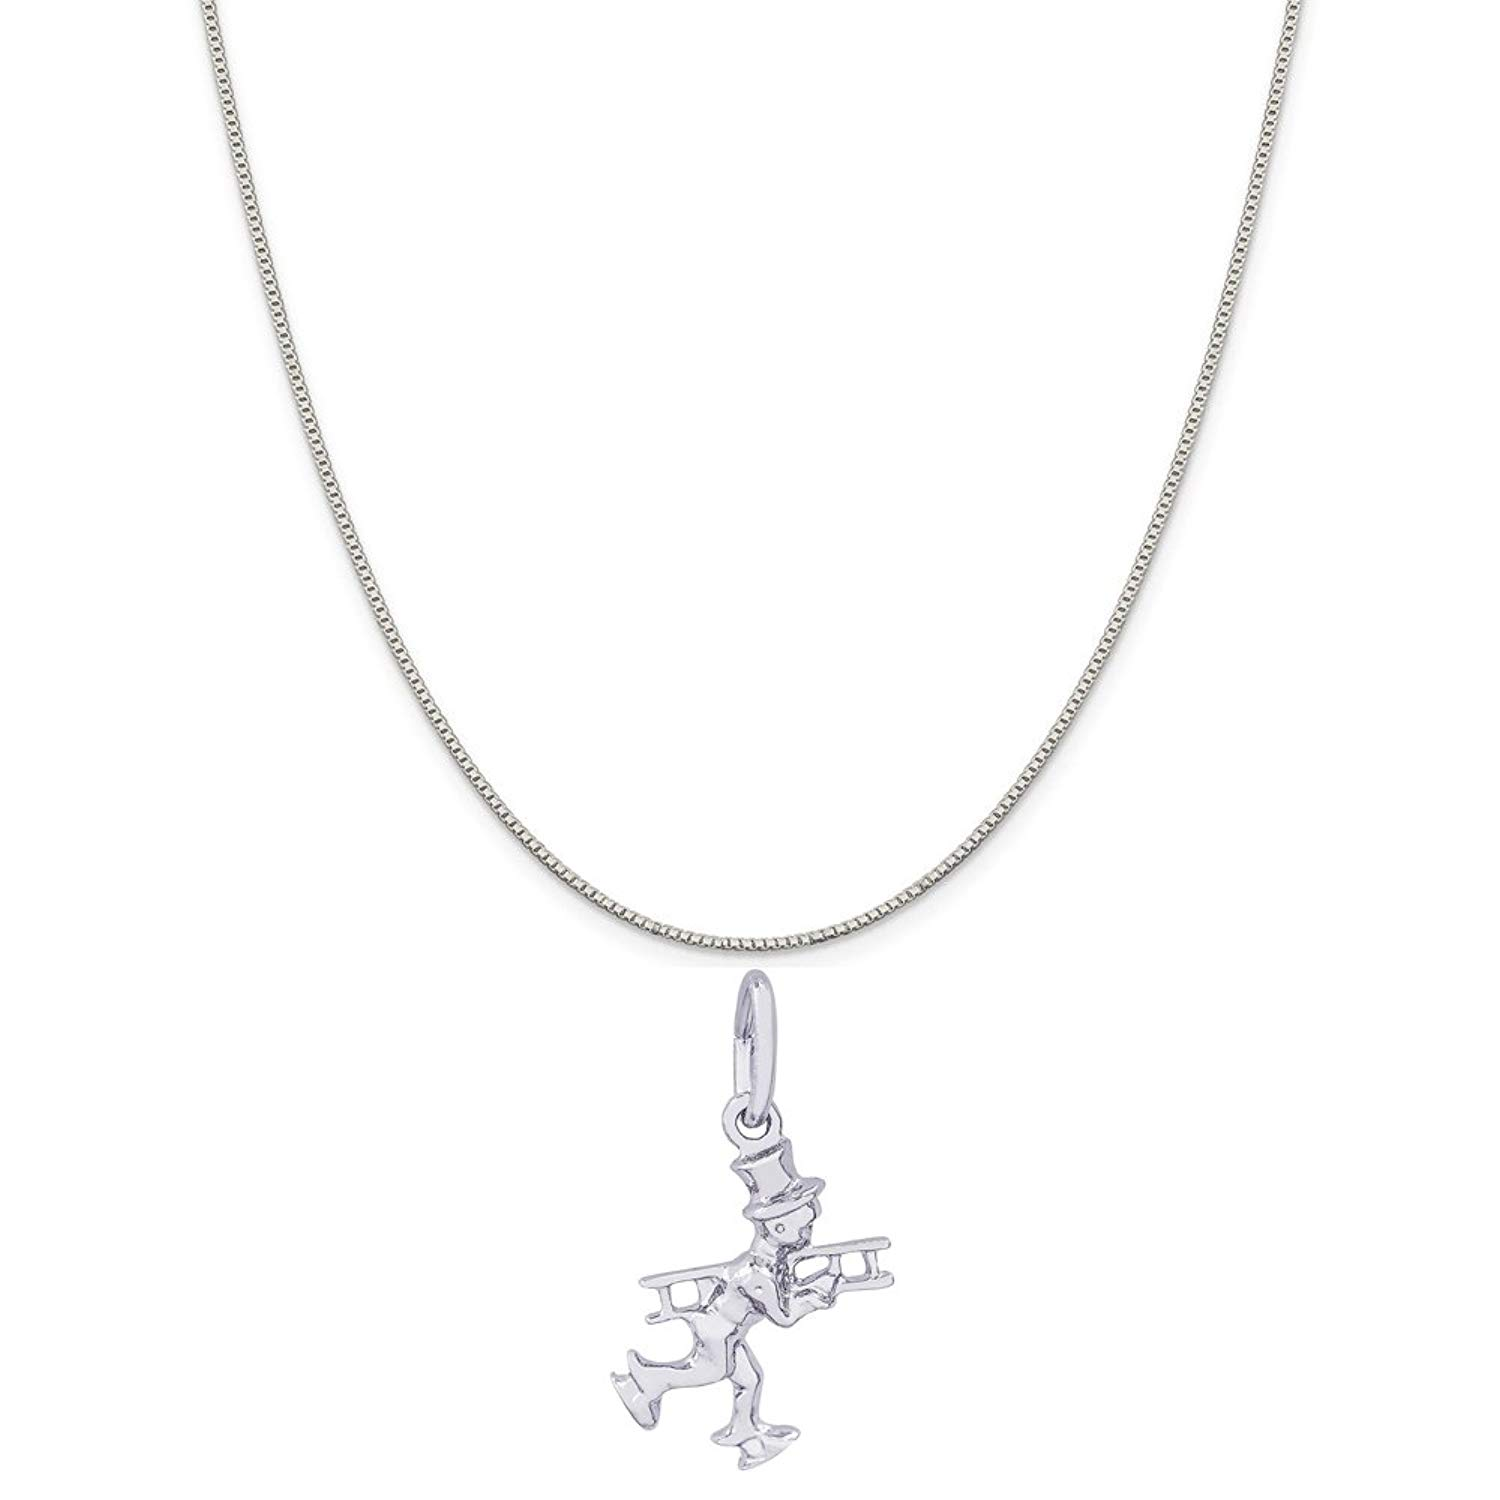 Rembrandt Charms Sterling Silver Dragon Charm on a 16 Box or Curb Chain Necklace 18 or 20 inch Rope